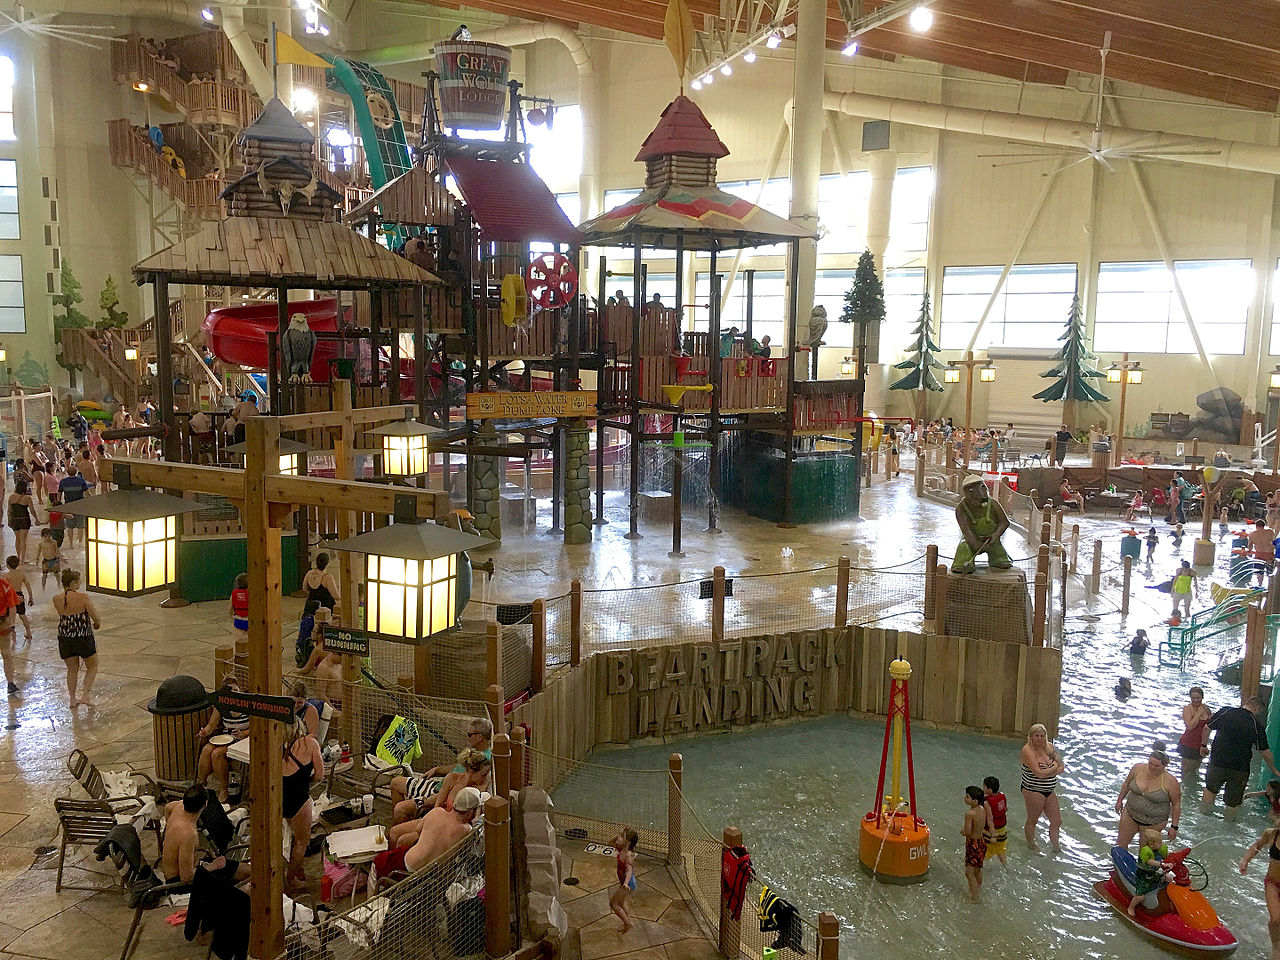 File:Great Wolf Lodge interior - Grand Mound, Washington